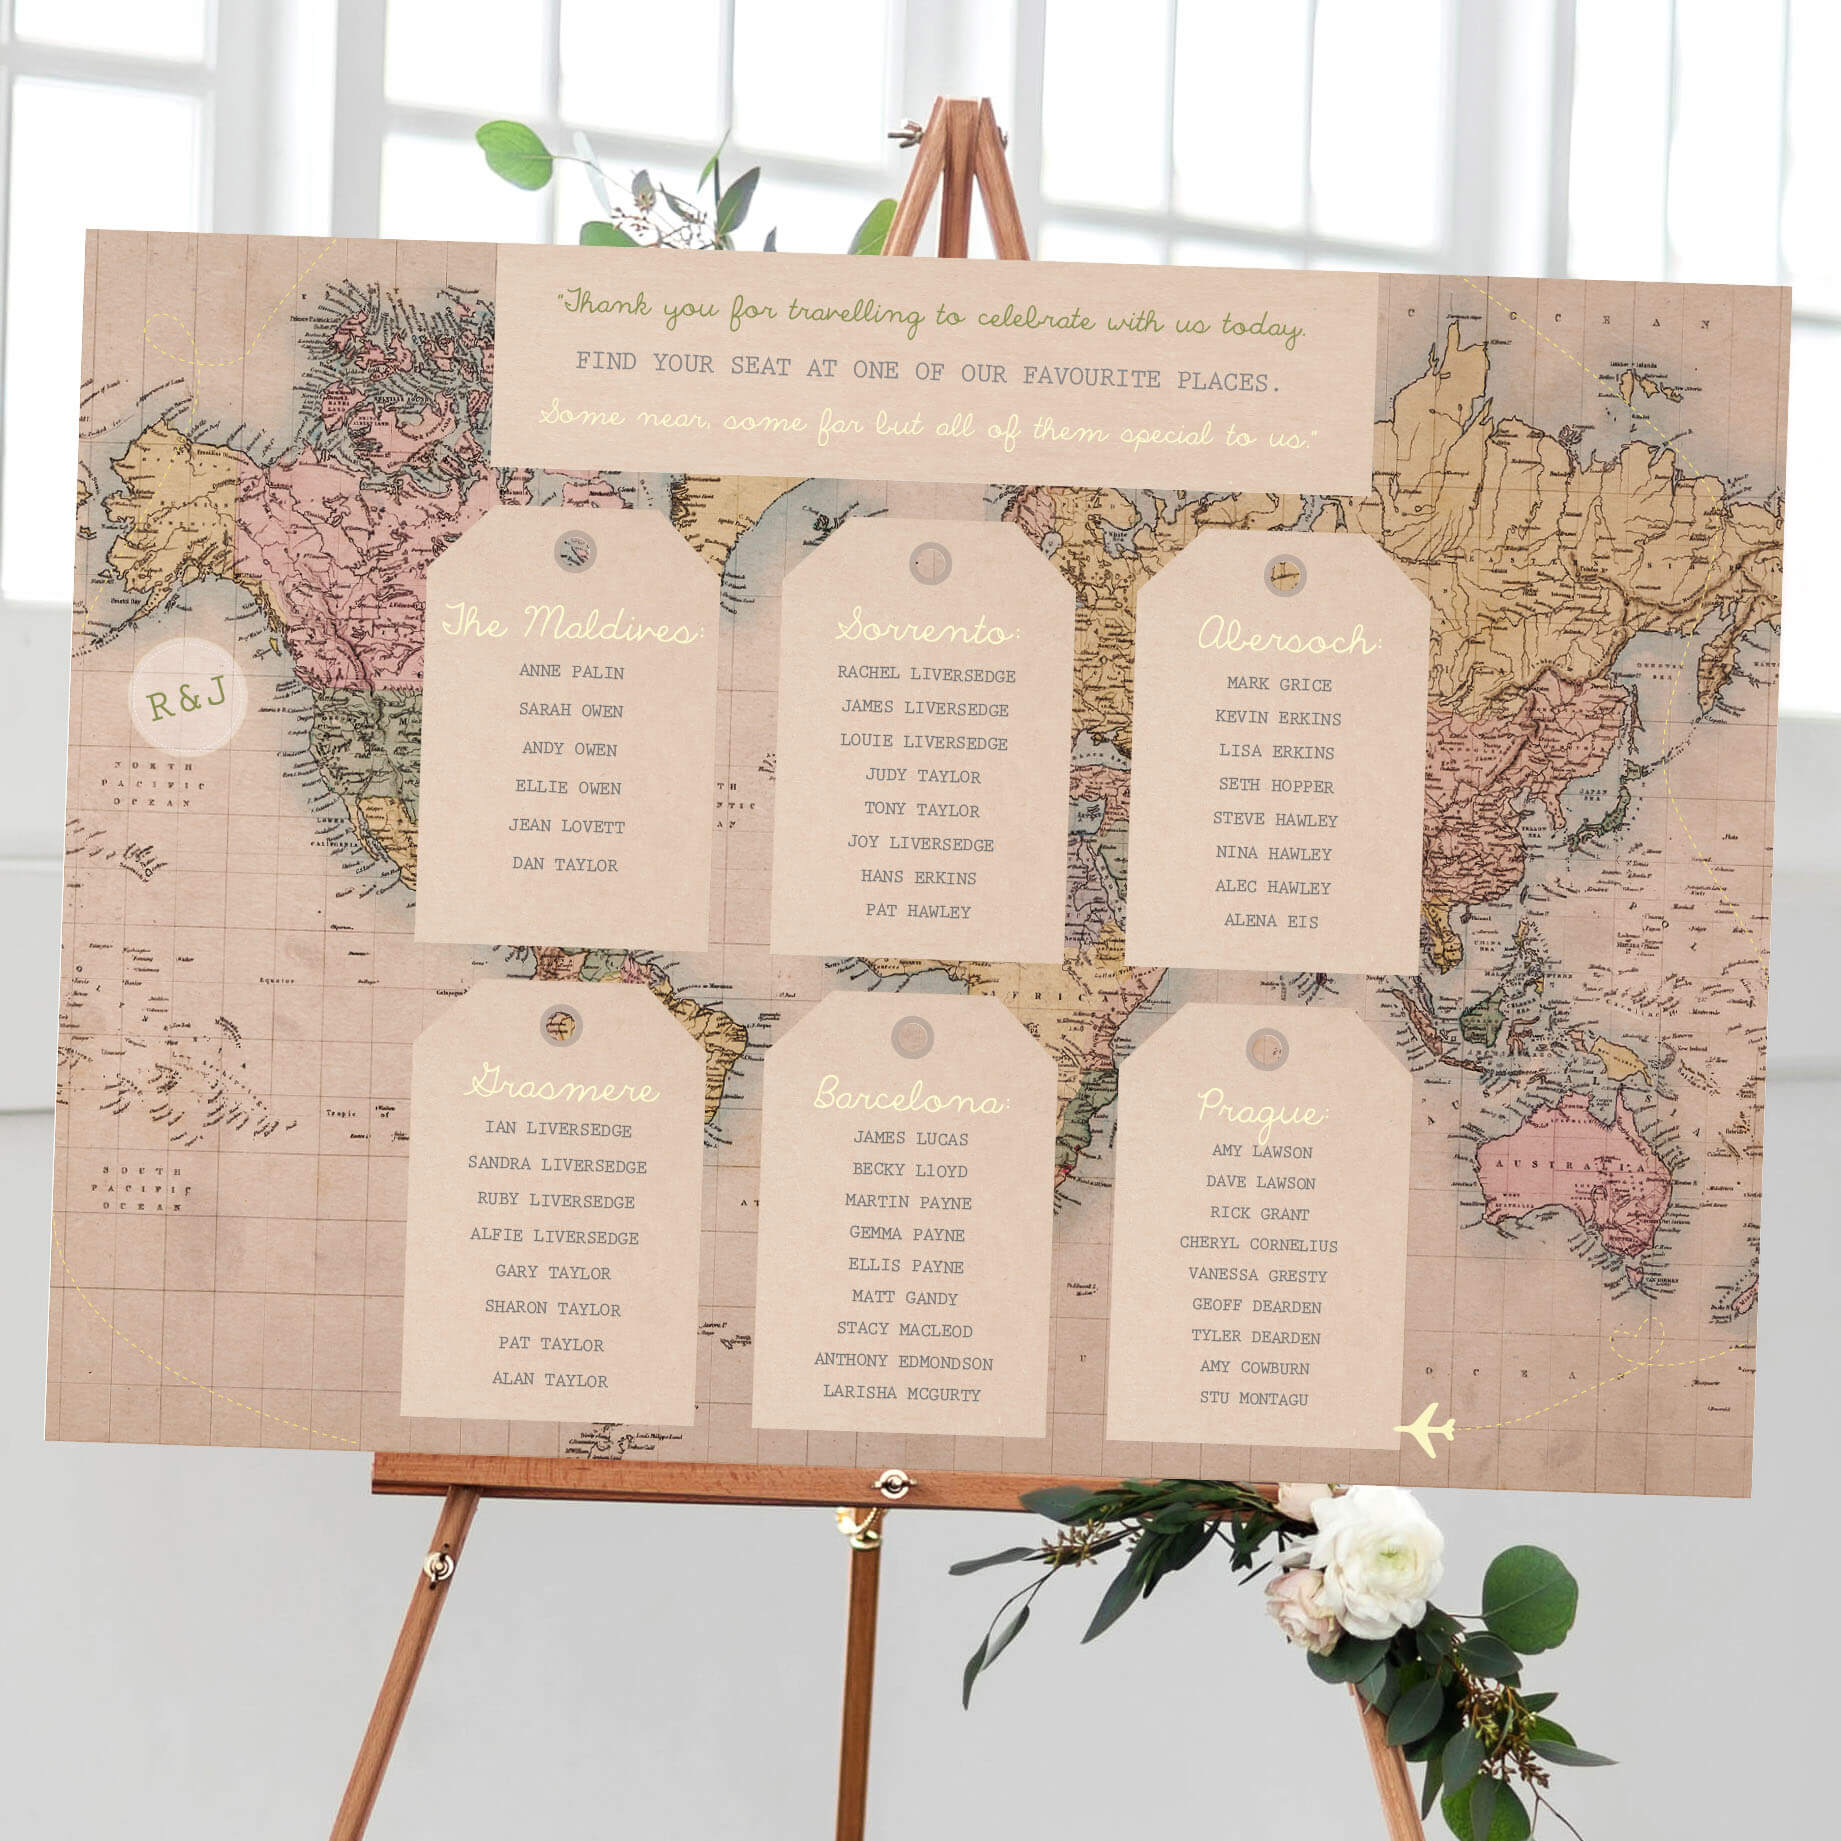 Vintage Travel Map Table Plan designed by Rodo Creative in Sale, Manchester